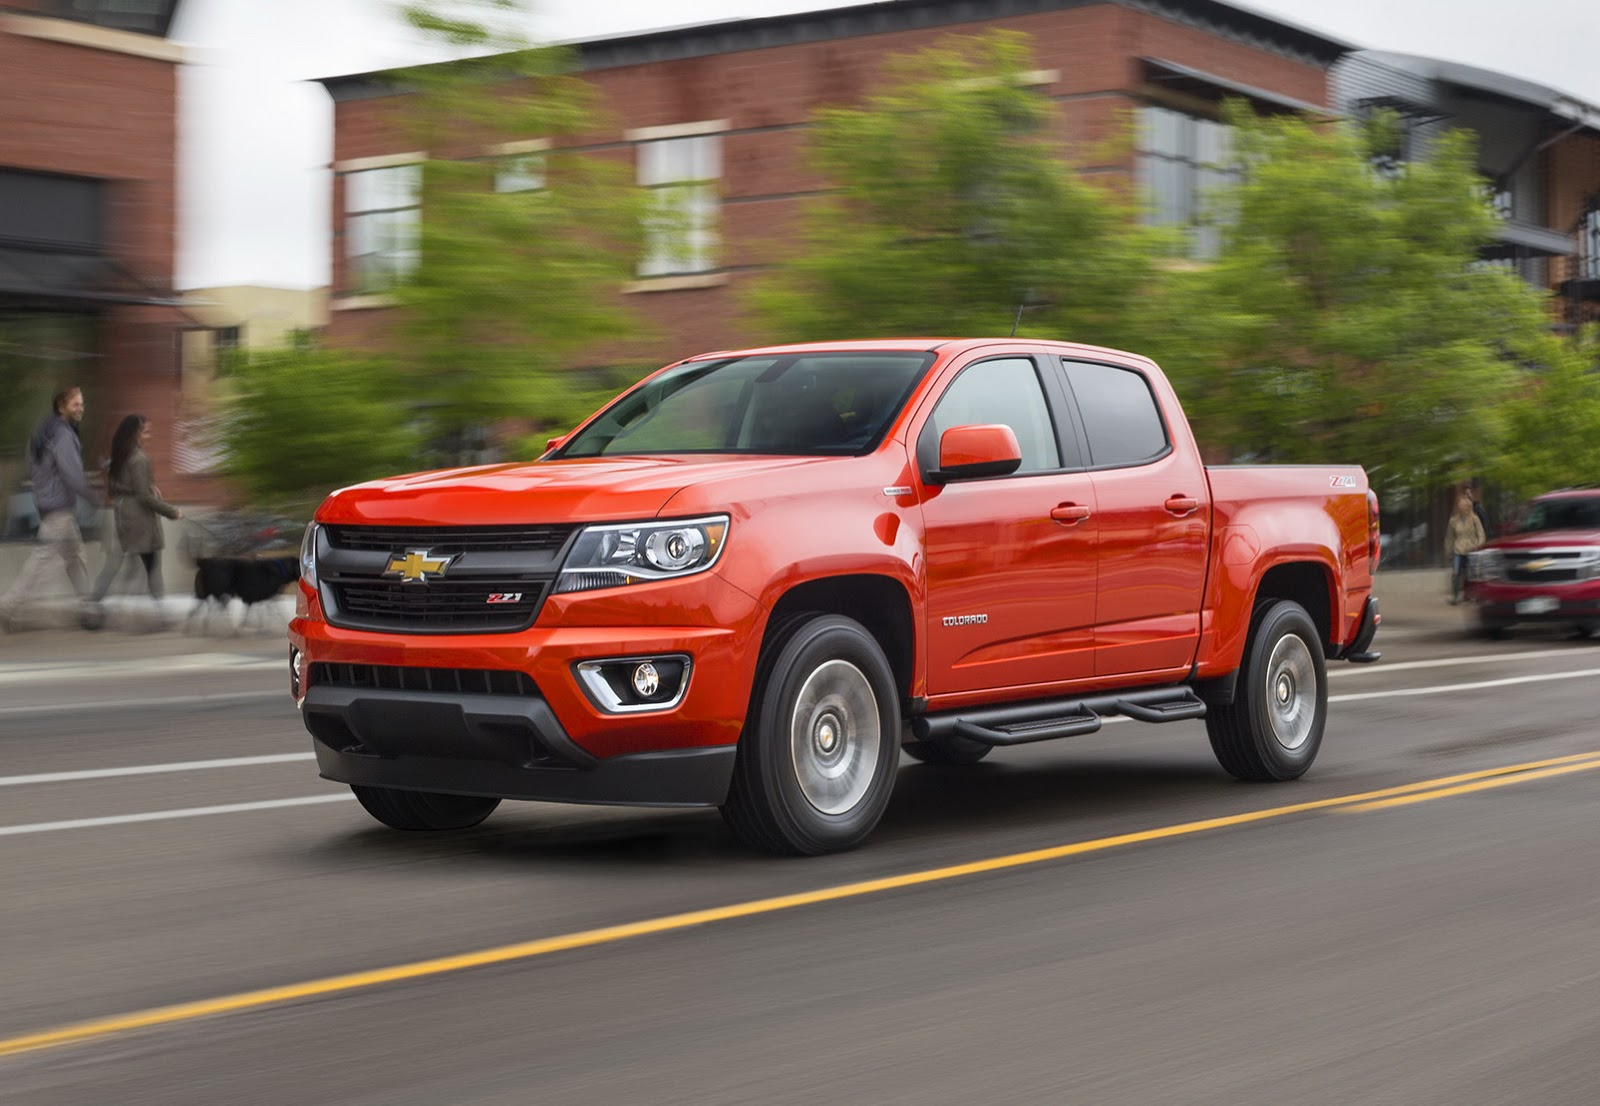 2016 chevy colorado and gmc canyon gain diesel engine in the usa. Black Bedroom Furniture Sets. Home Design Ideas